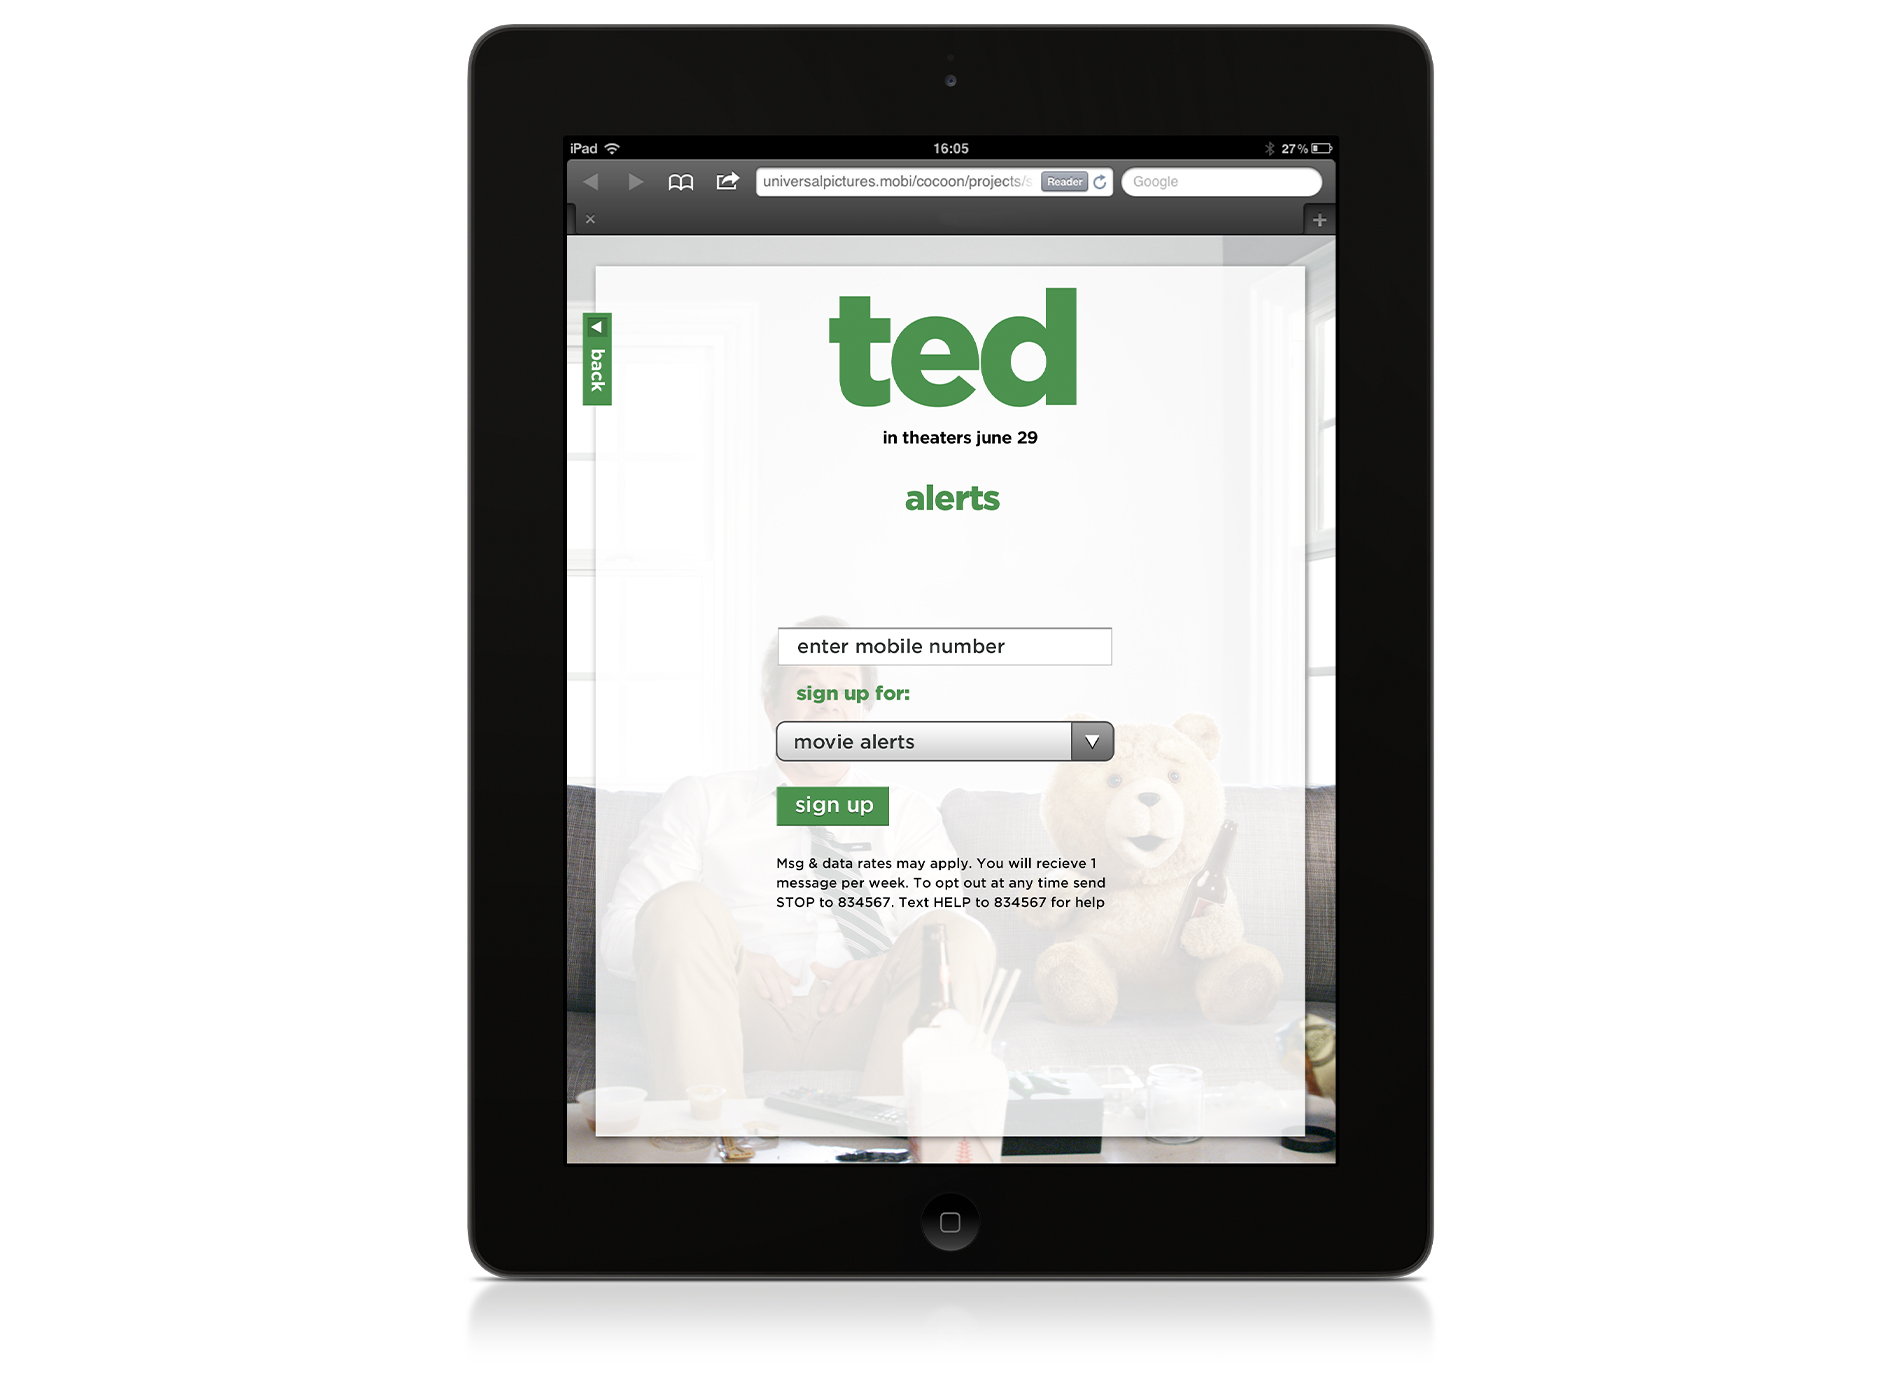 iPad: sign up for mobile alerts.